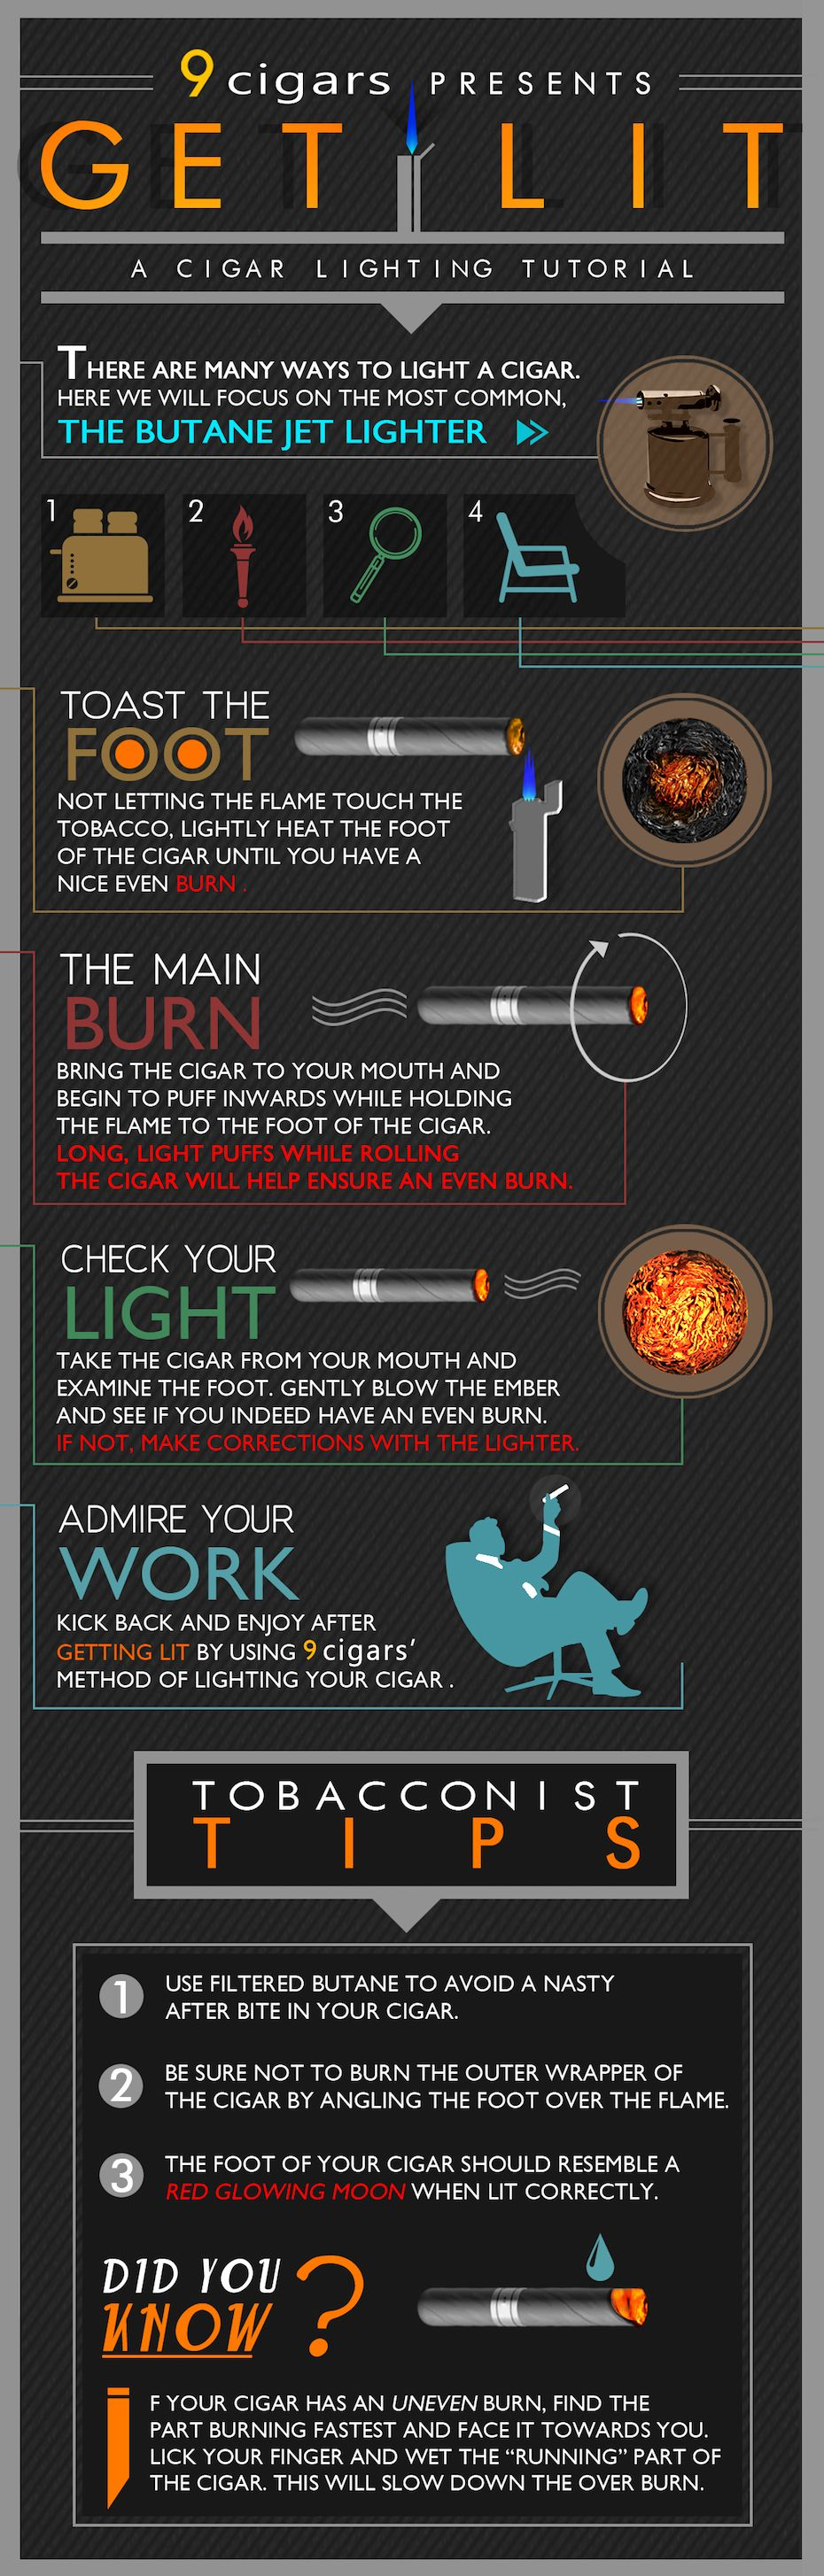 How To Light A Cigar Infographic Puro Stil Mor